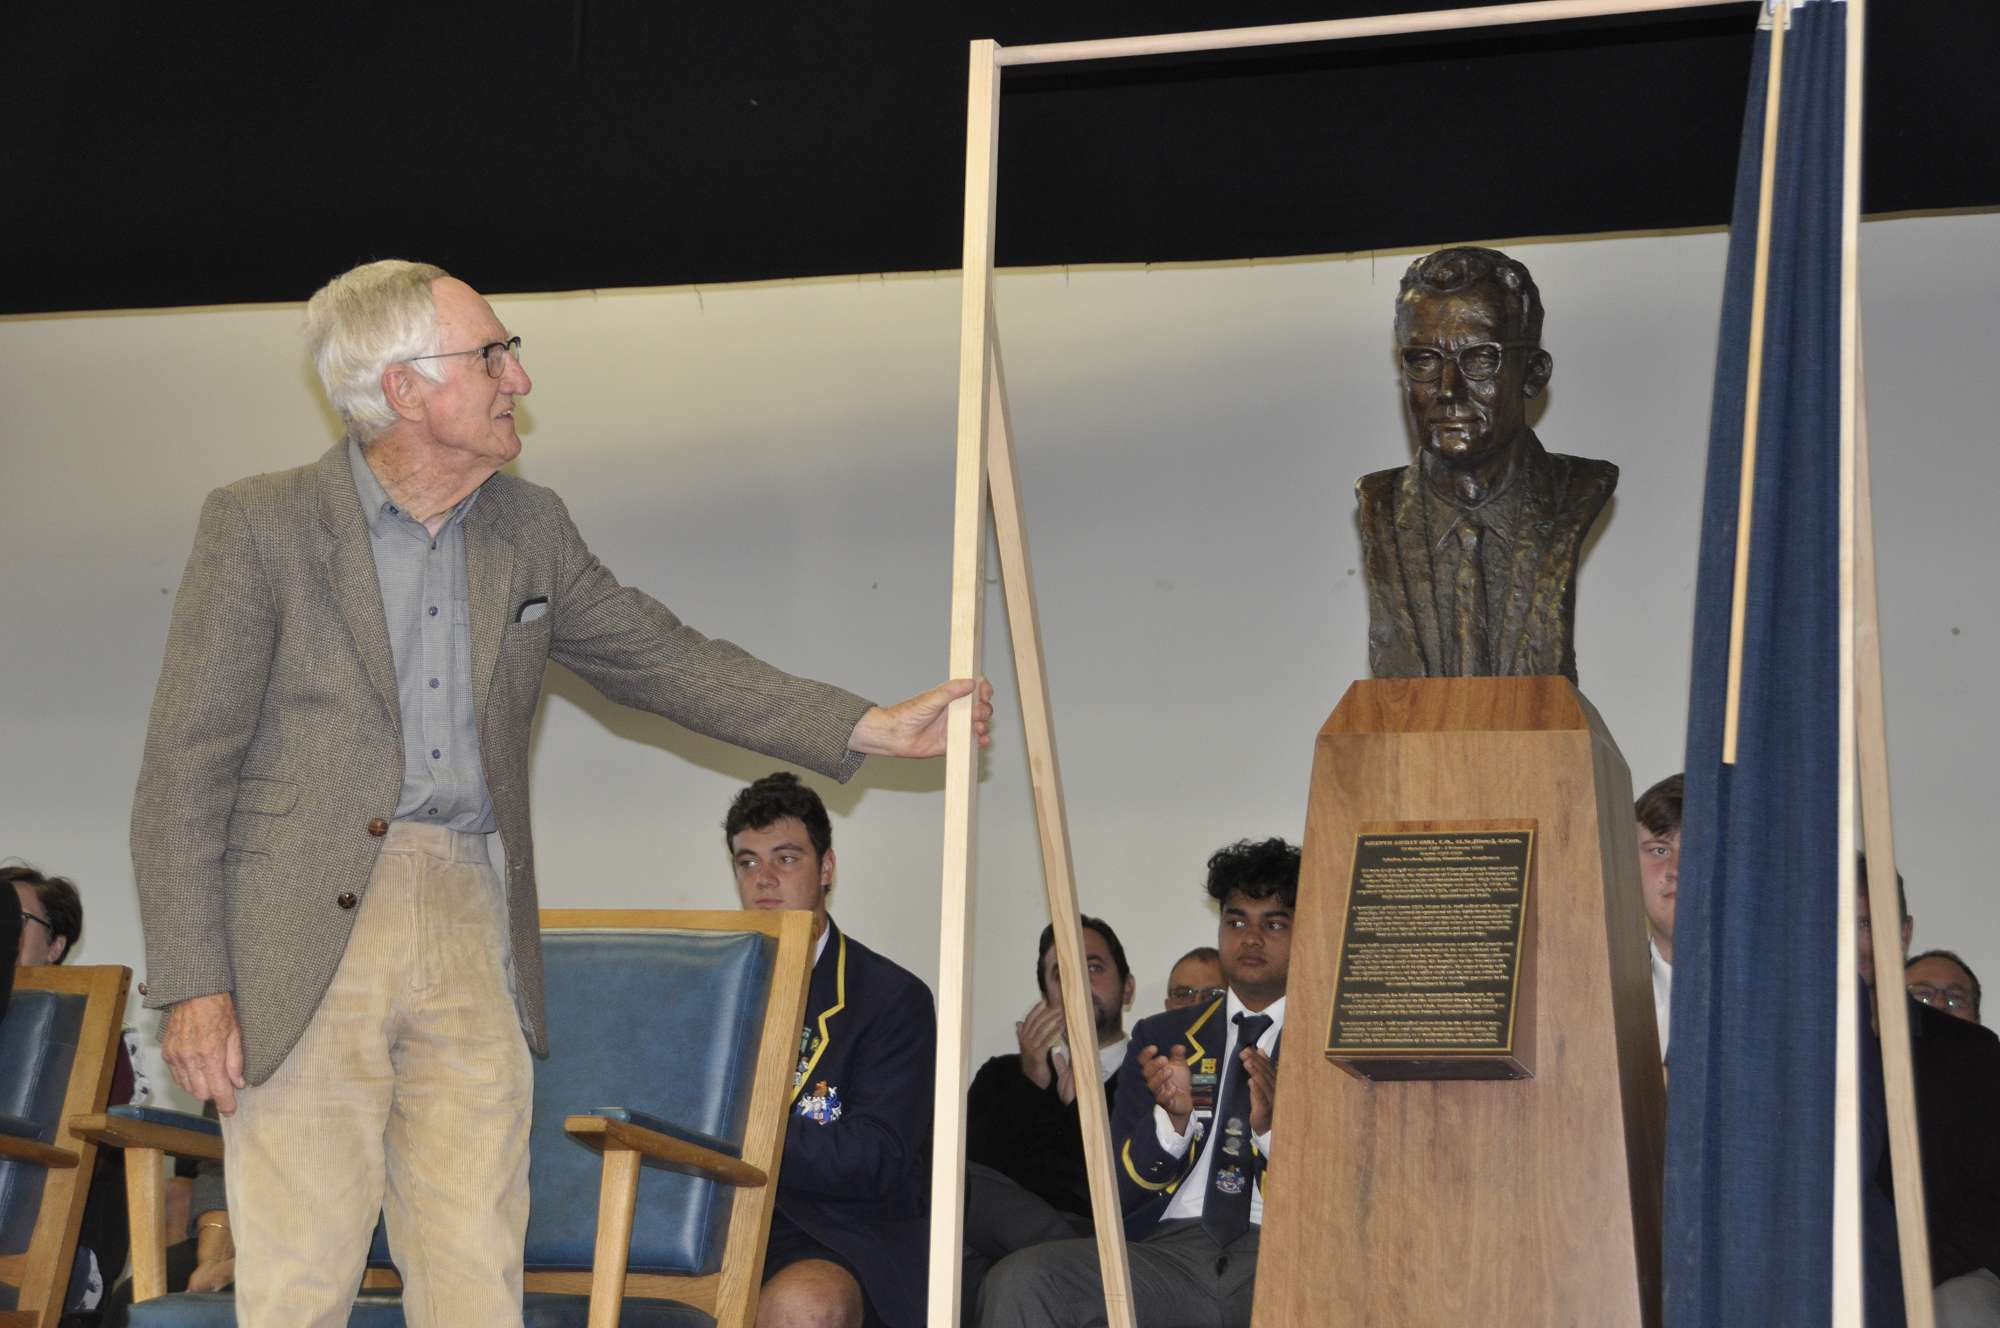 Dr Robert Bull unveiling the sculpture of his fath